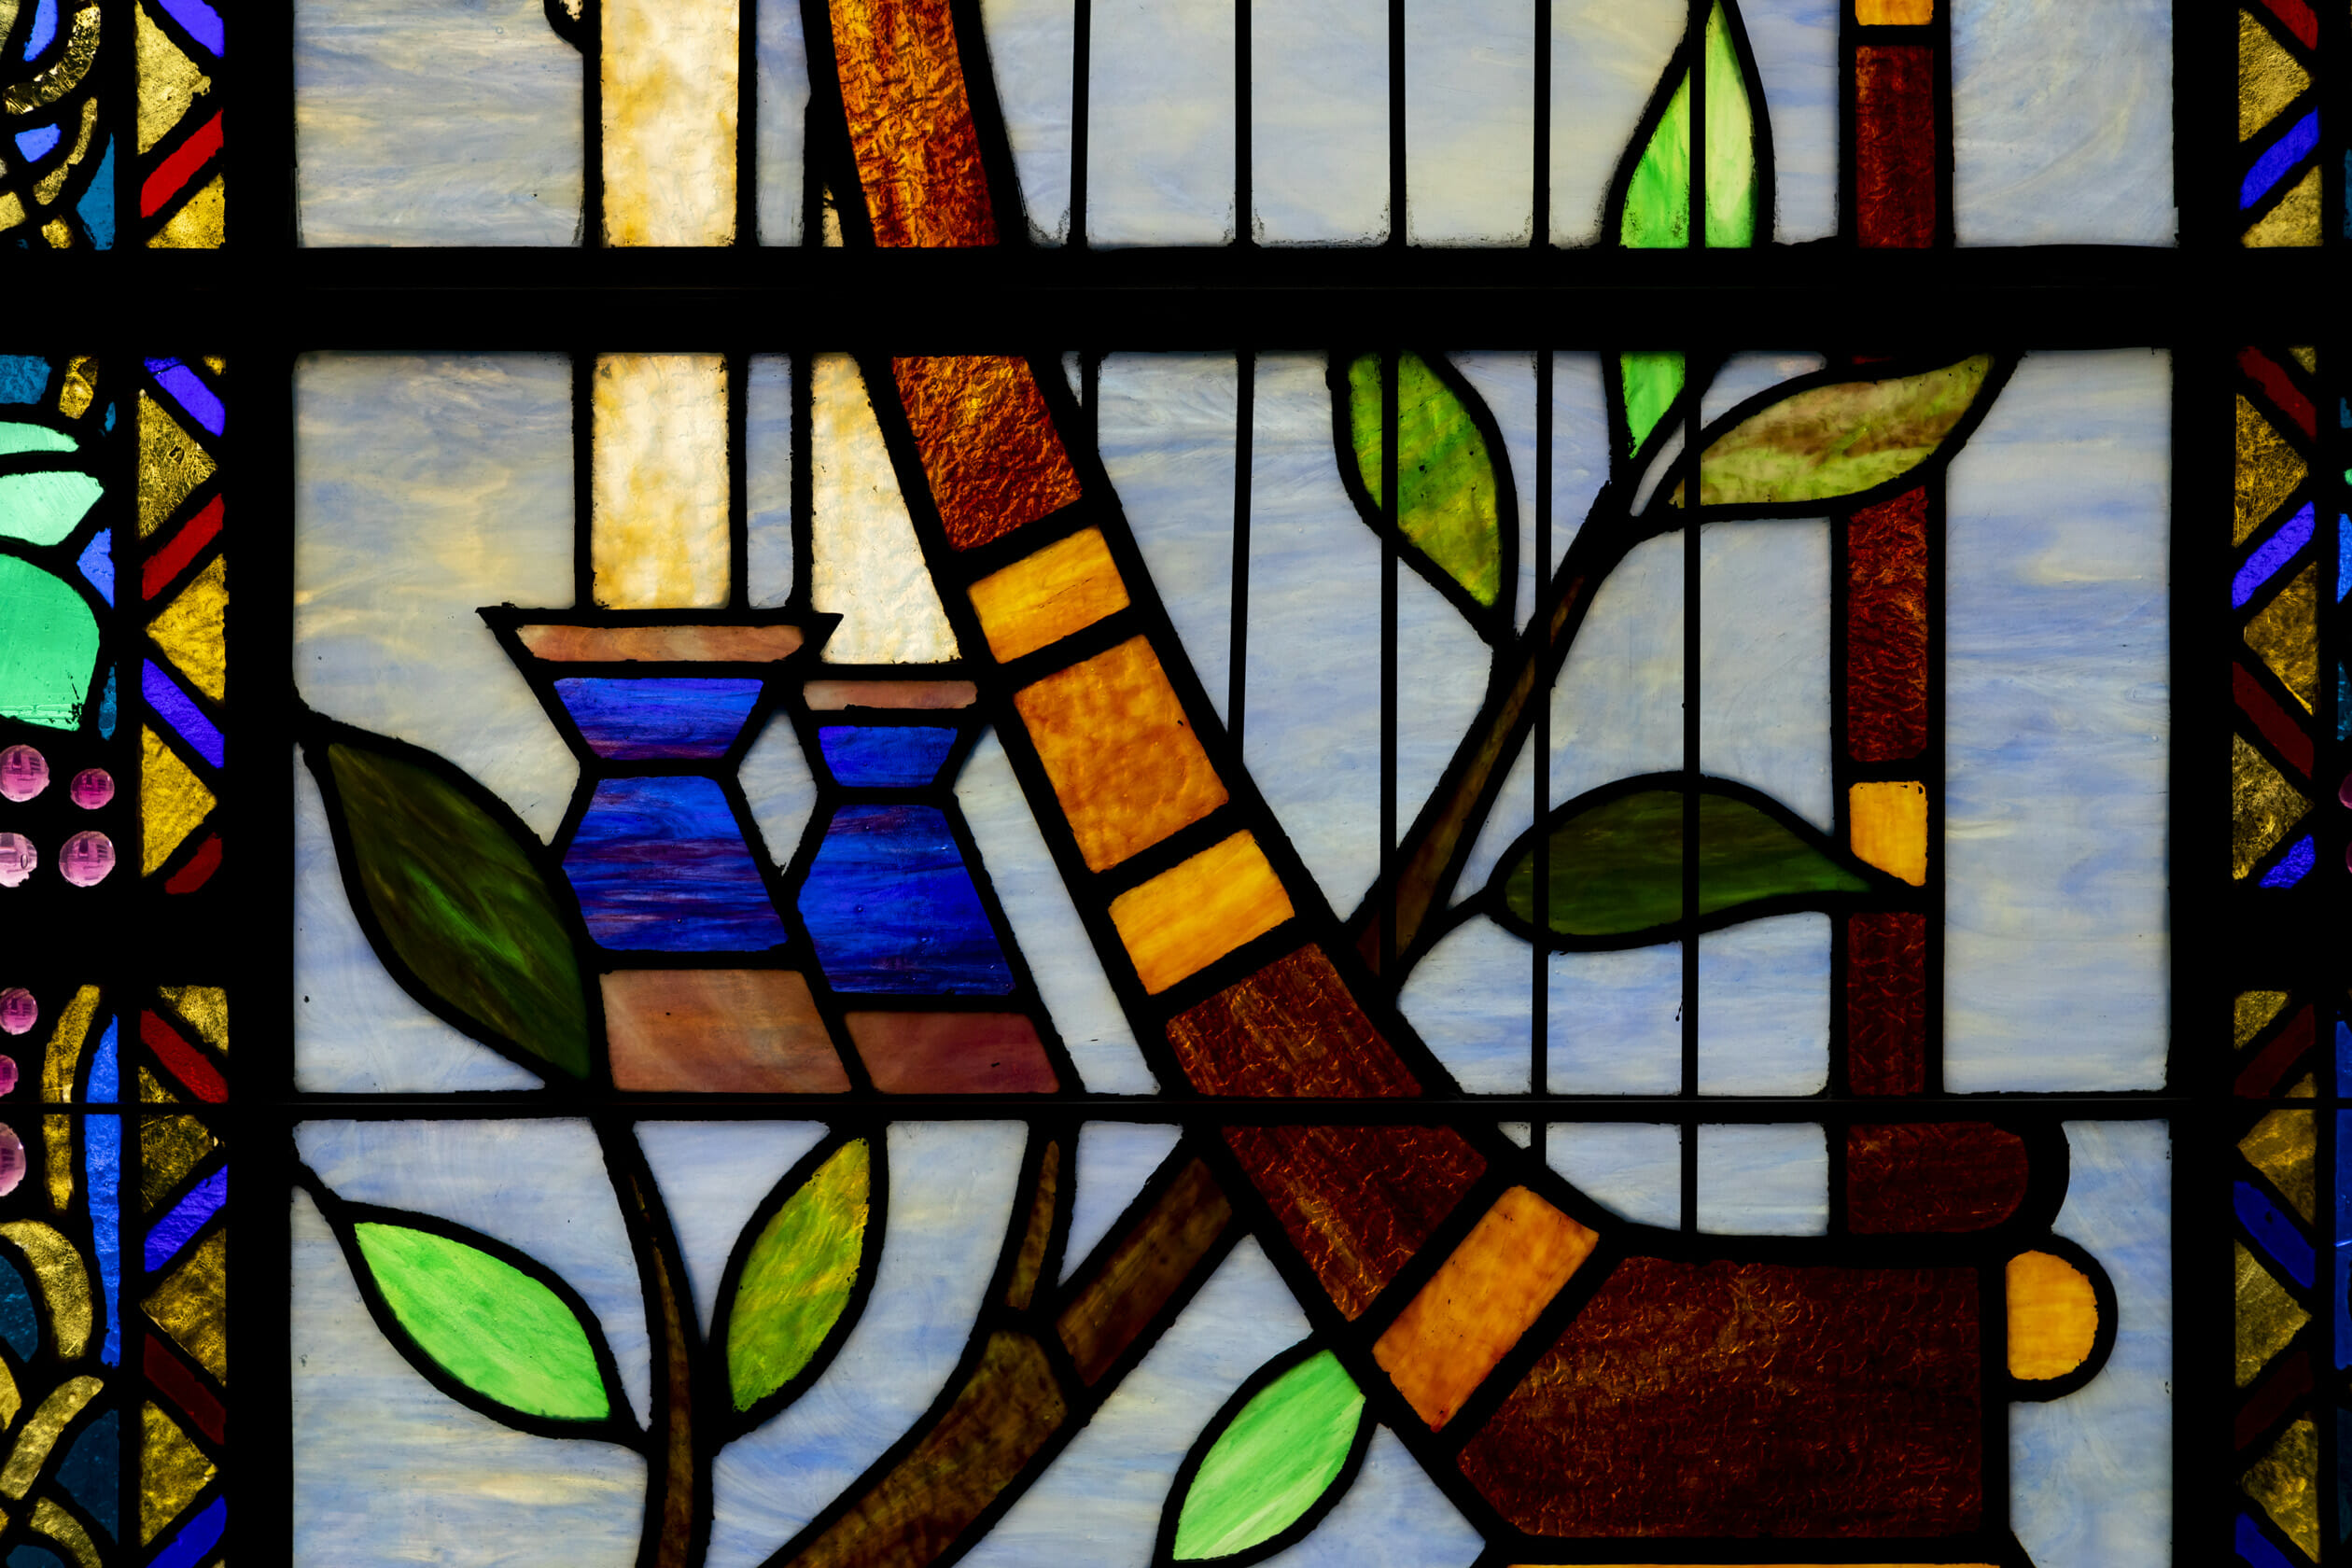 beautiful stained glass at b'nai jeshurun